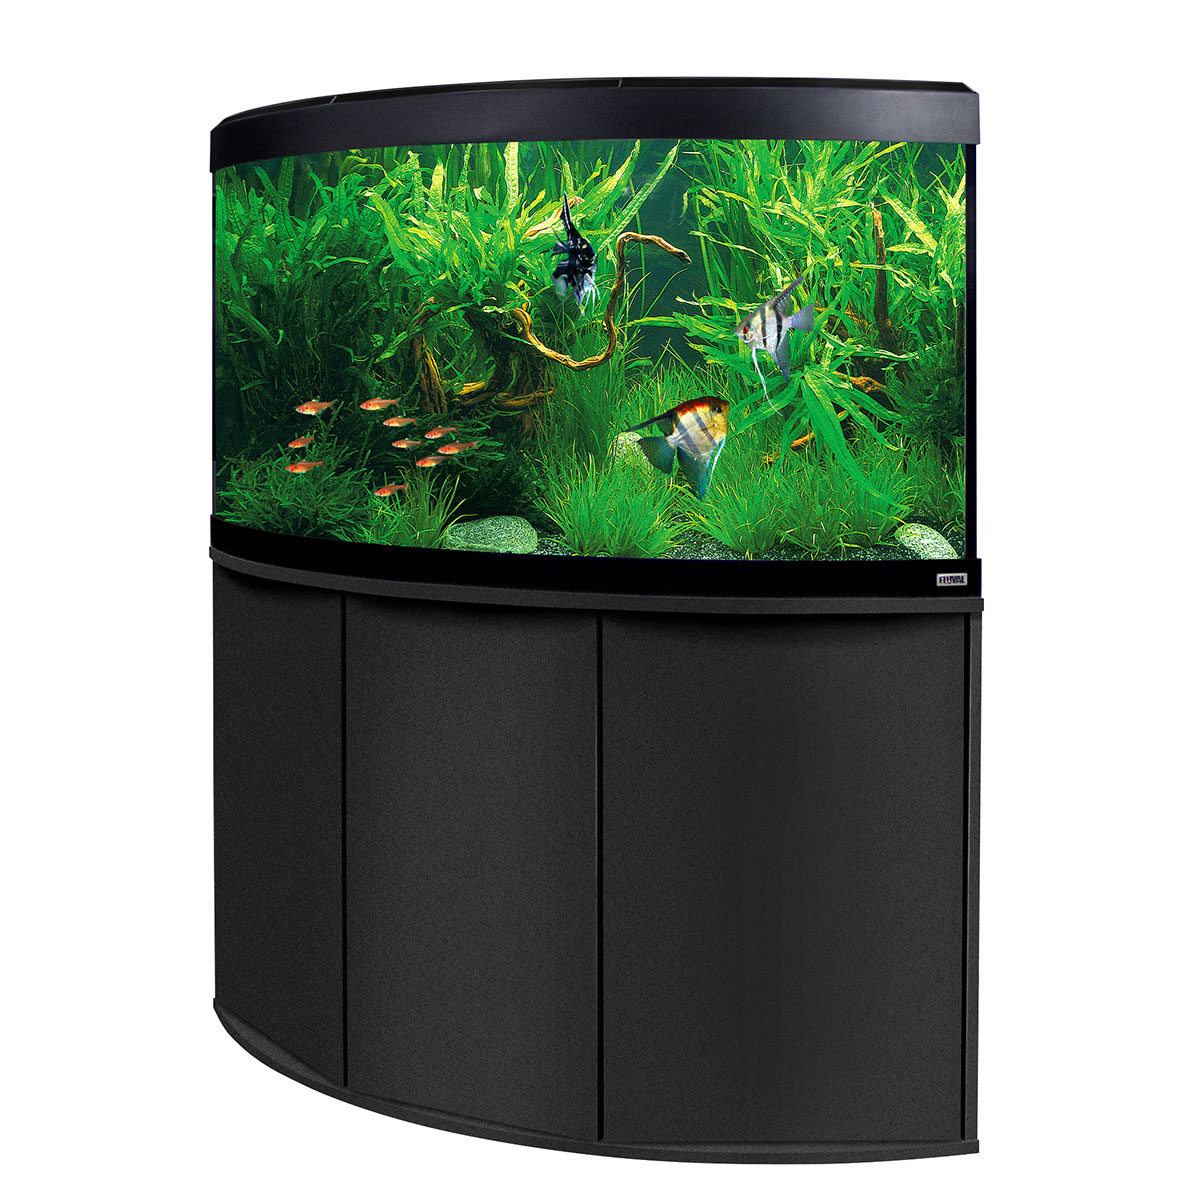 fluval panoramaaquarium mit ledbeleuchtung venezia 350. Black Bedroom Furniture Sets. Home Design Ideas